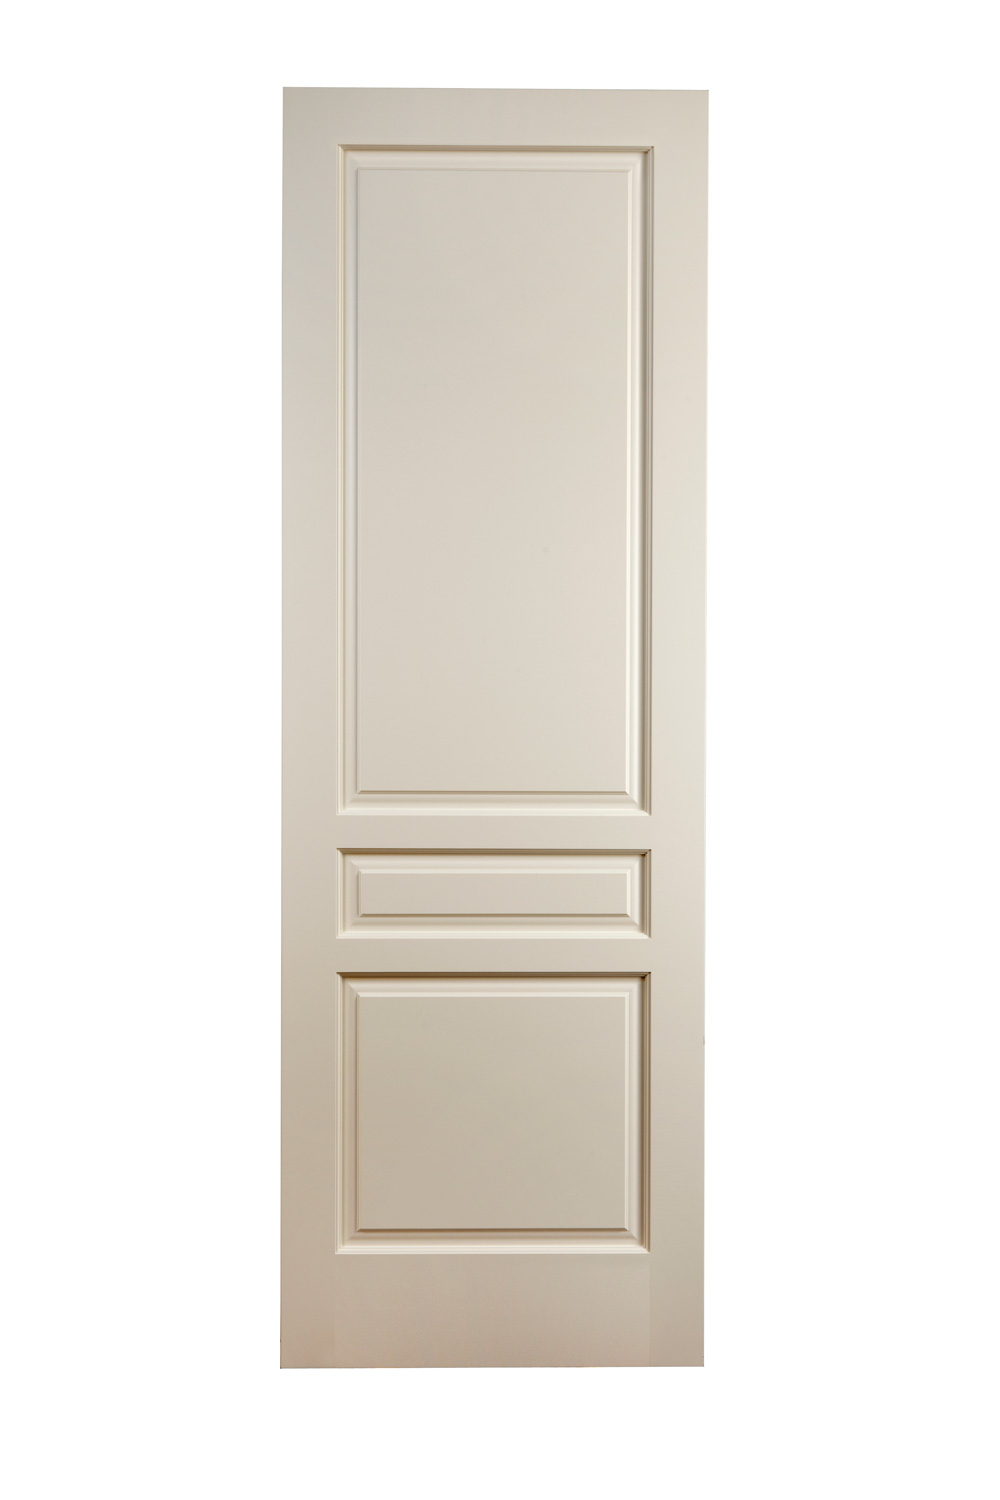 Traditional door interior panel doors design for Interior panel doors